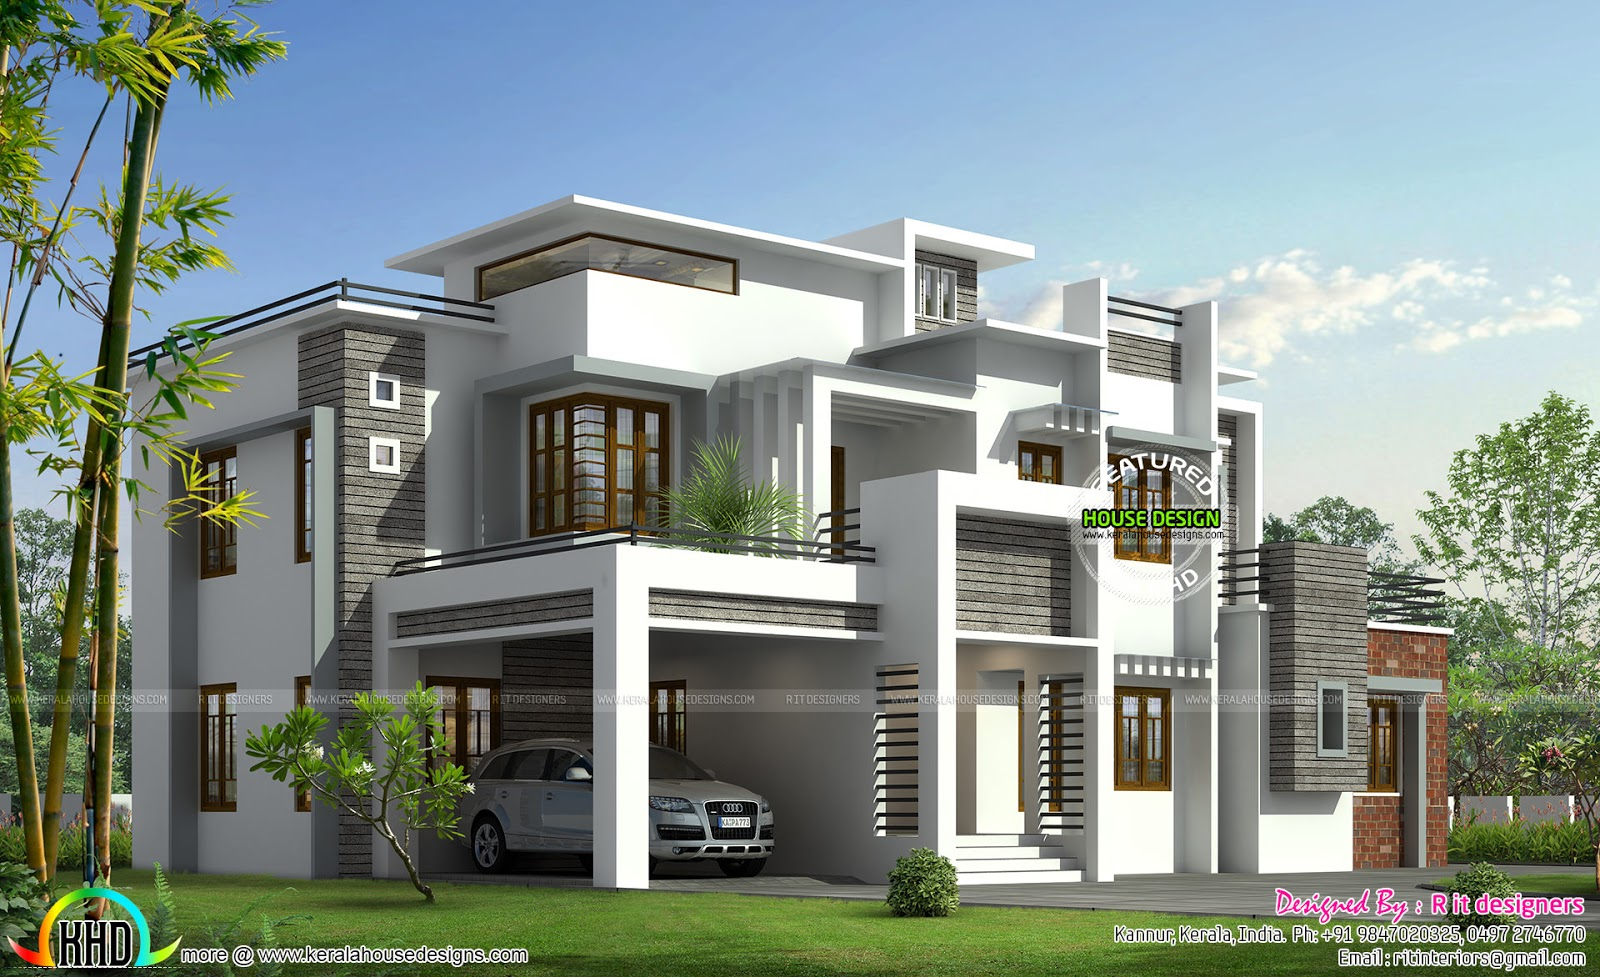 Box model contemporary house kerala home design and Types of modern houses